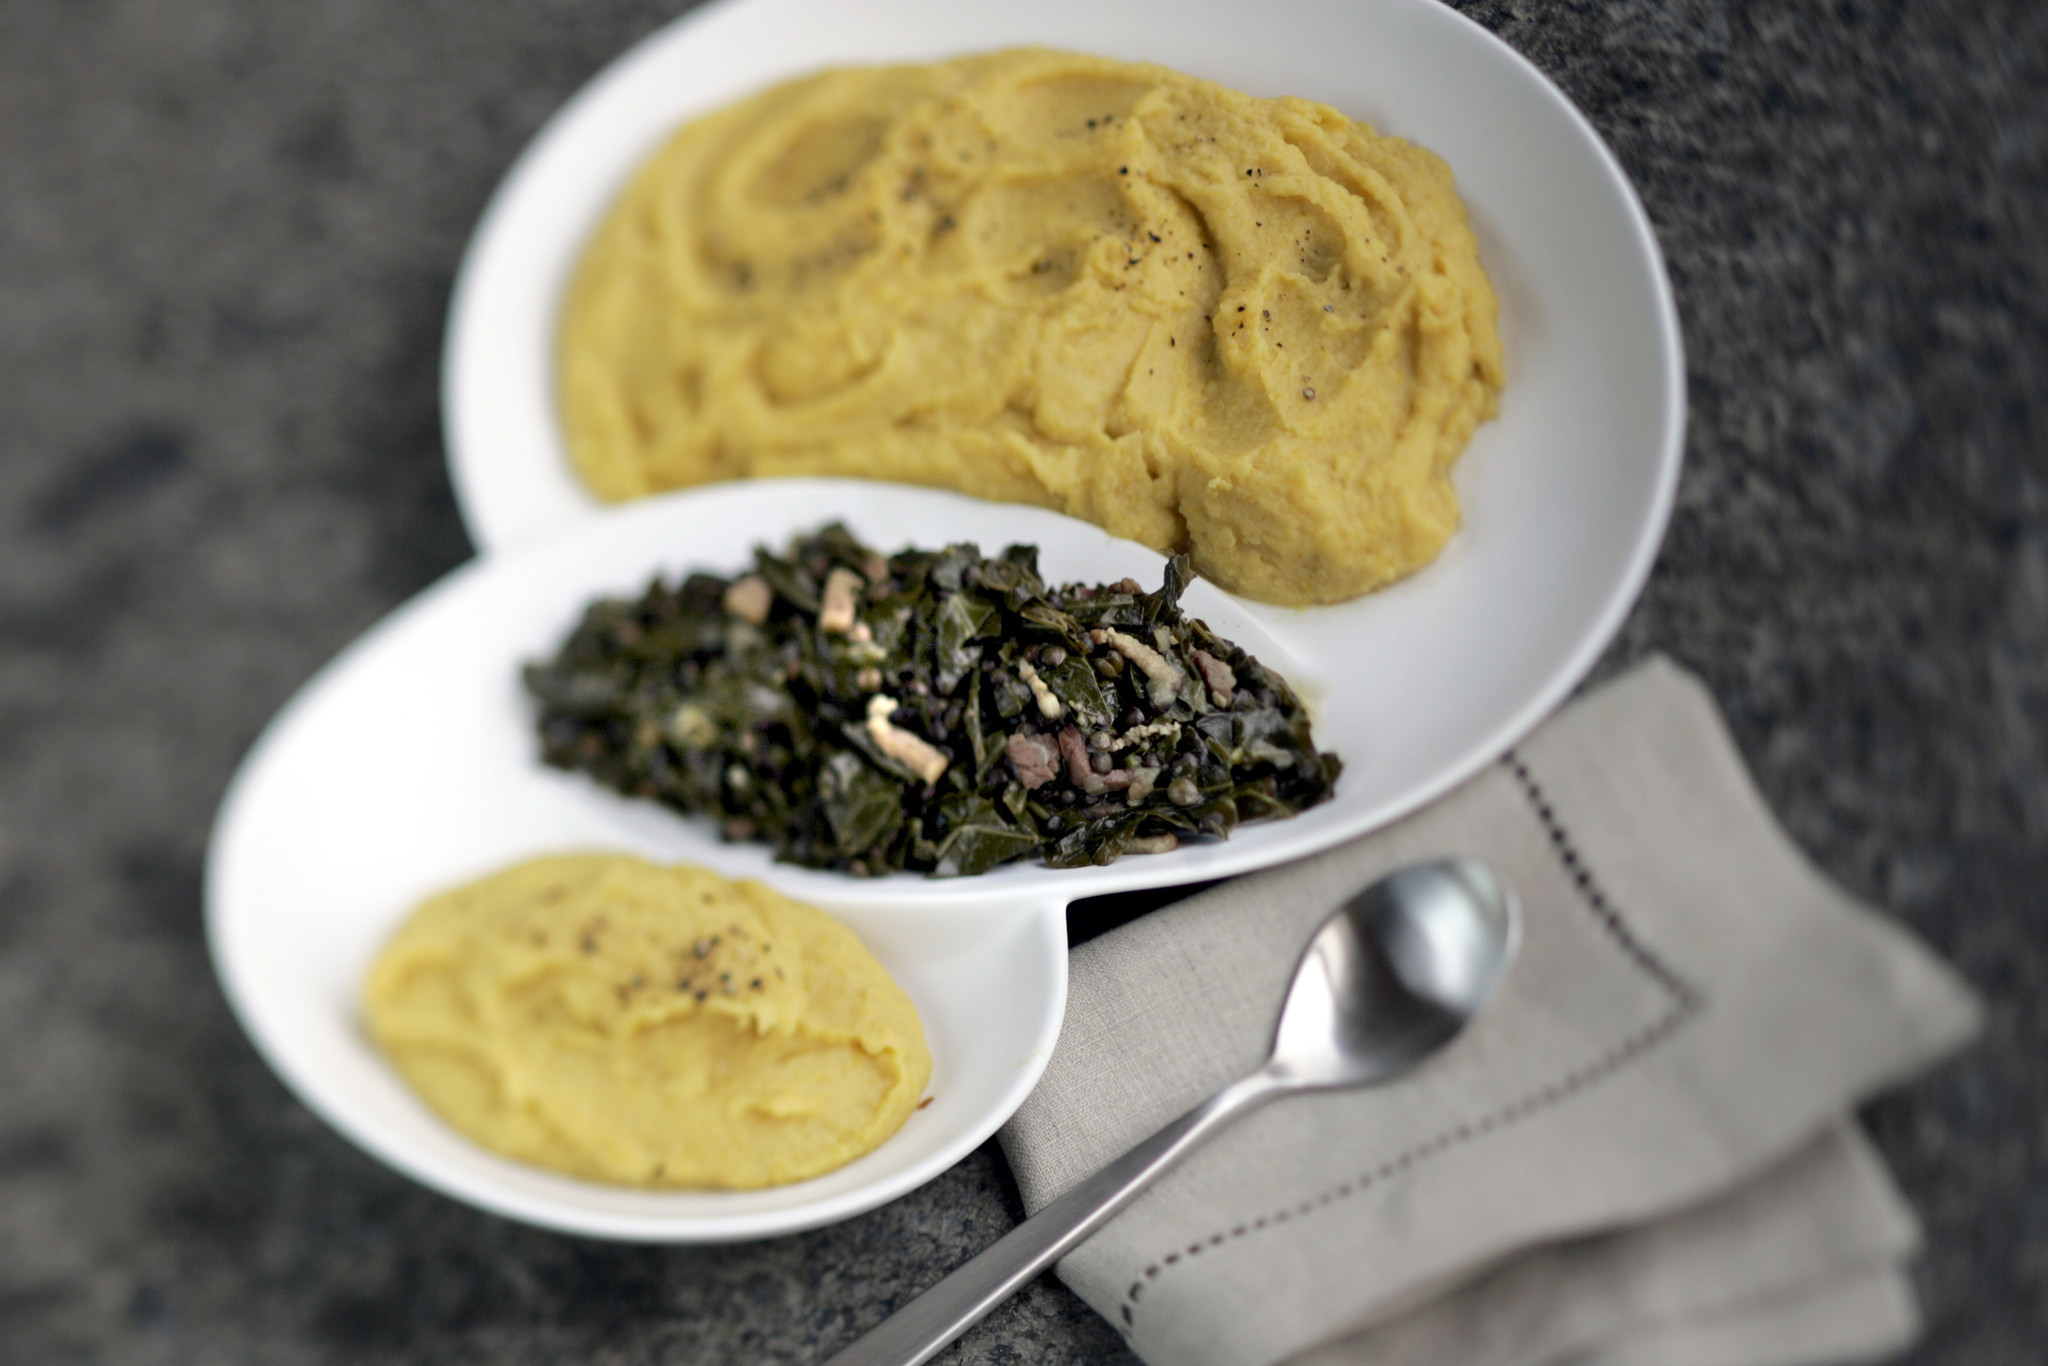 Photos: 97 great Thanksgiving recipes - Spiced sweet potato puree and collard greens and green lentils